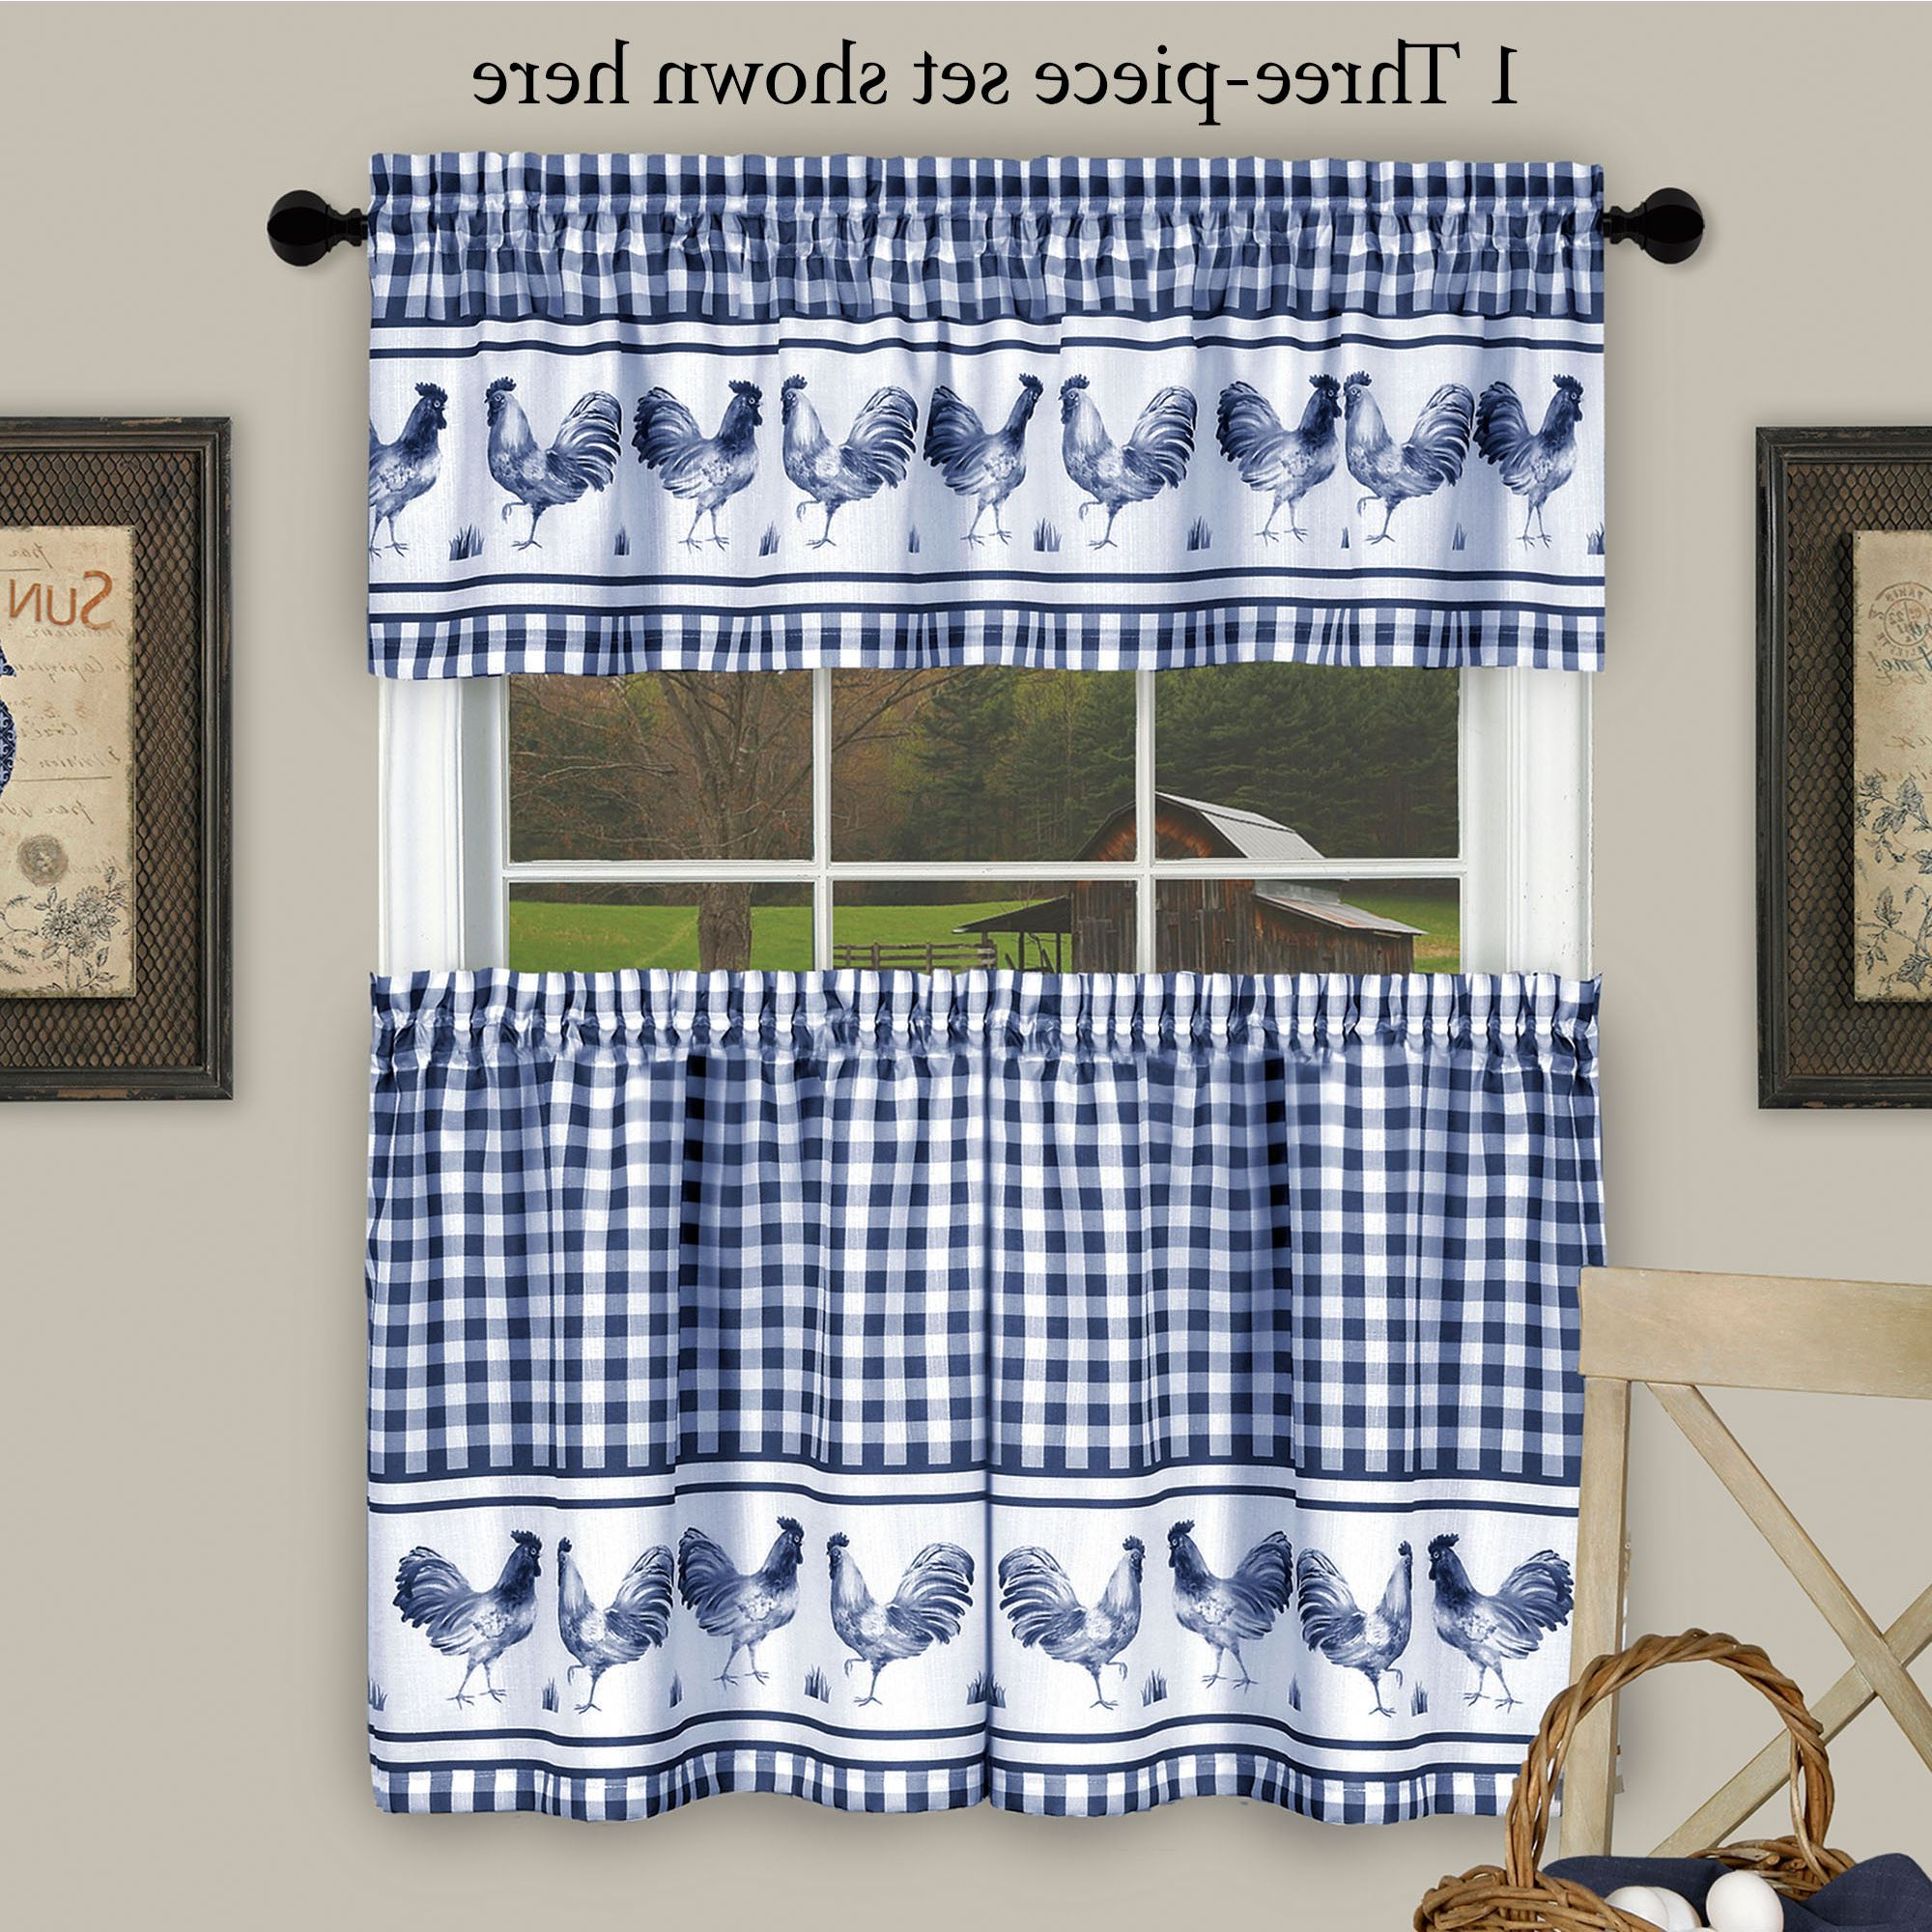 Fashionable Backyard Biddy Midnight Blue Rooster Kitchen Tier And Valance Set Intended For Serene Rod Pocket Kitchen Tier Sets (View 18 of 20)